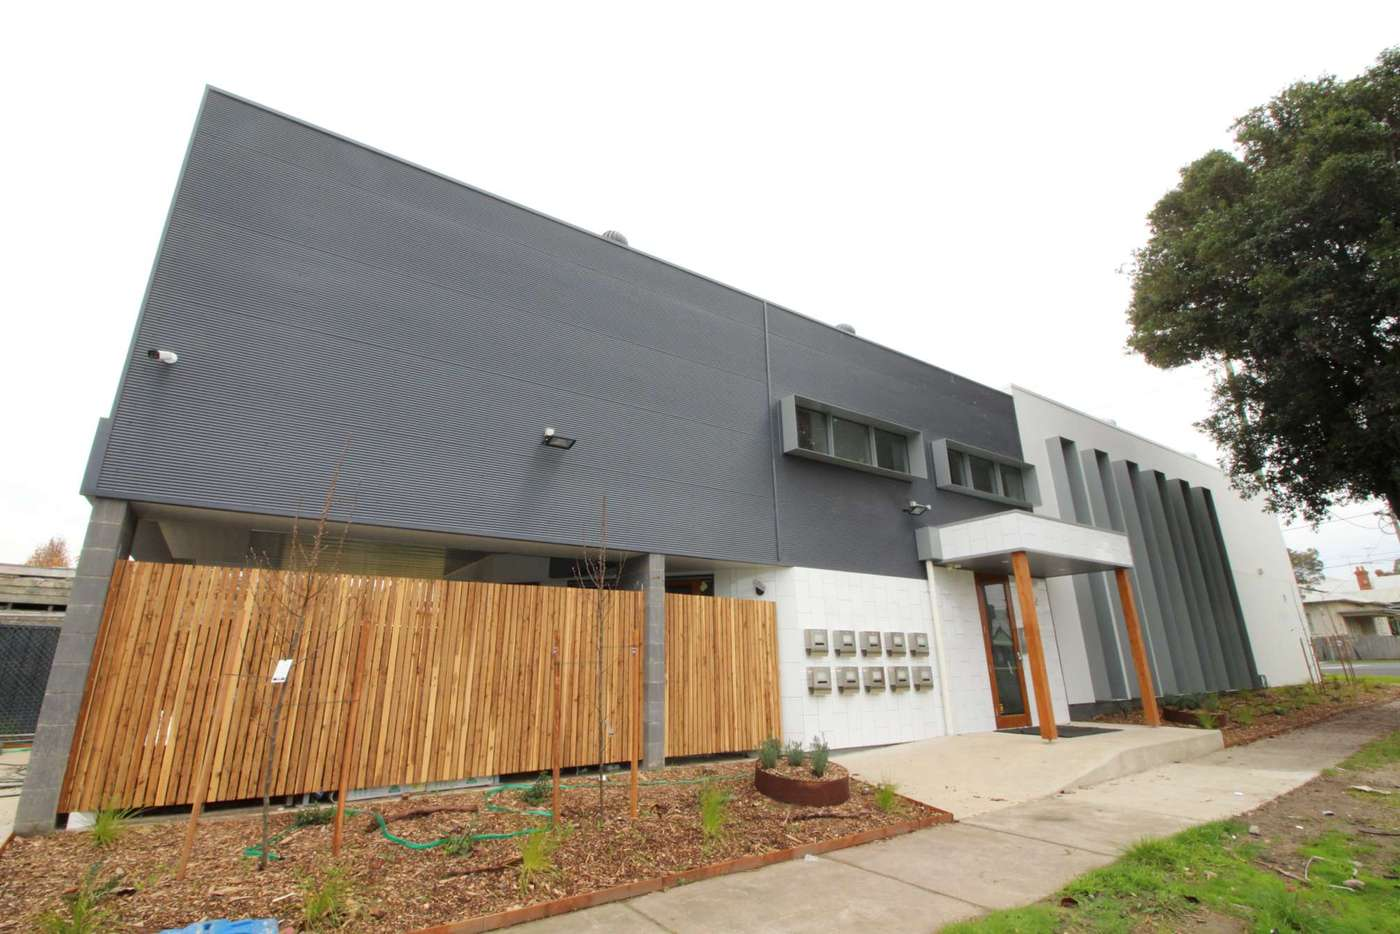 Main view of Homely apartment listing, 6/202 Kilgour Street, Geelong VIC 3220